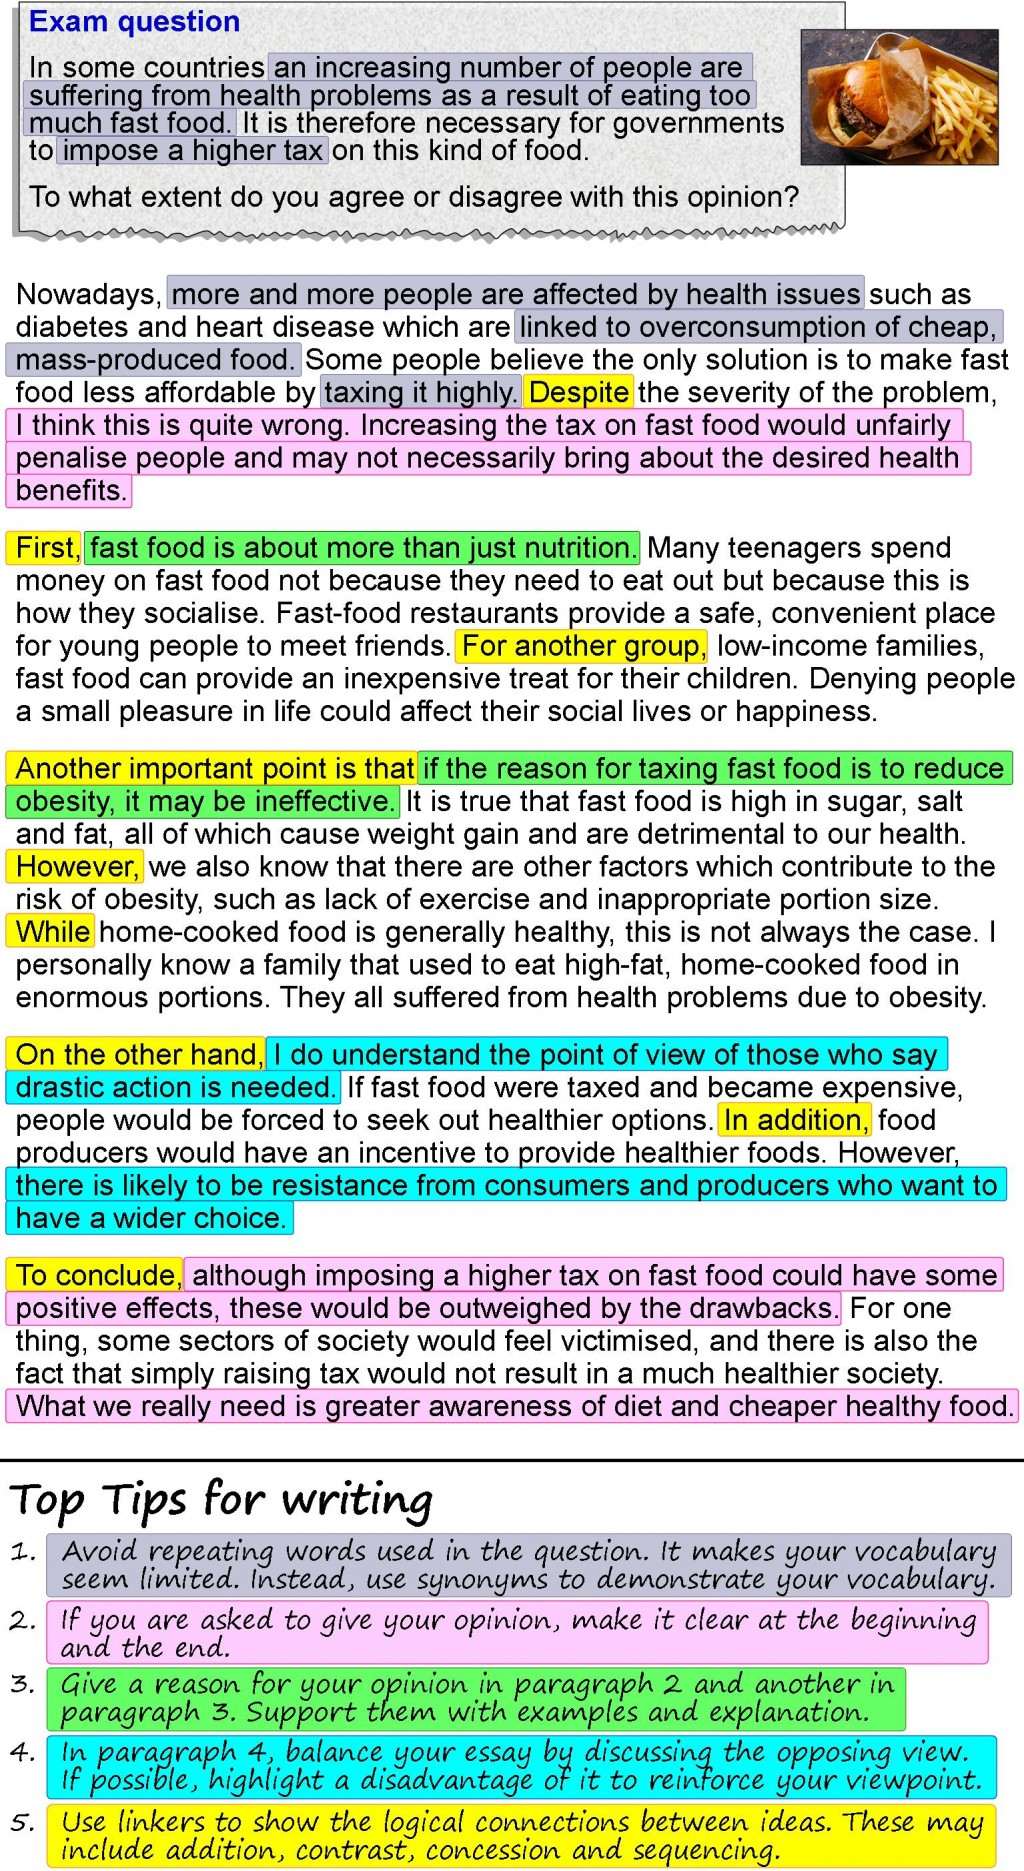 002 Essay Example Opinion An About Fast Food 4 Magnificent Prompts 6th Grade Examples 3rd Large